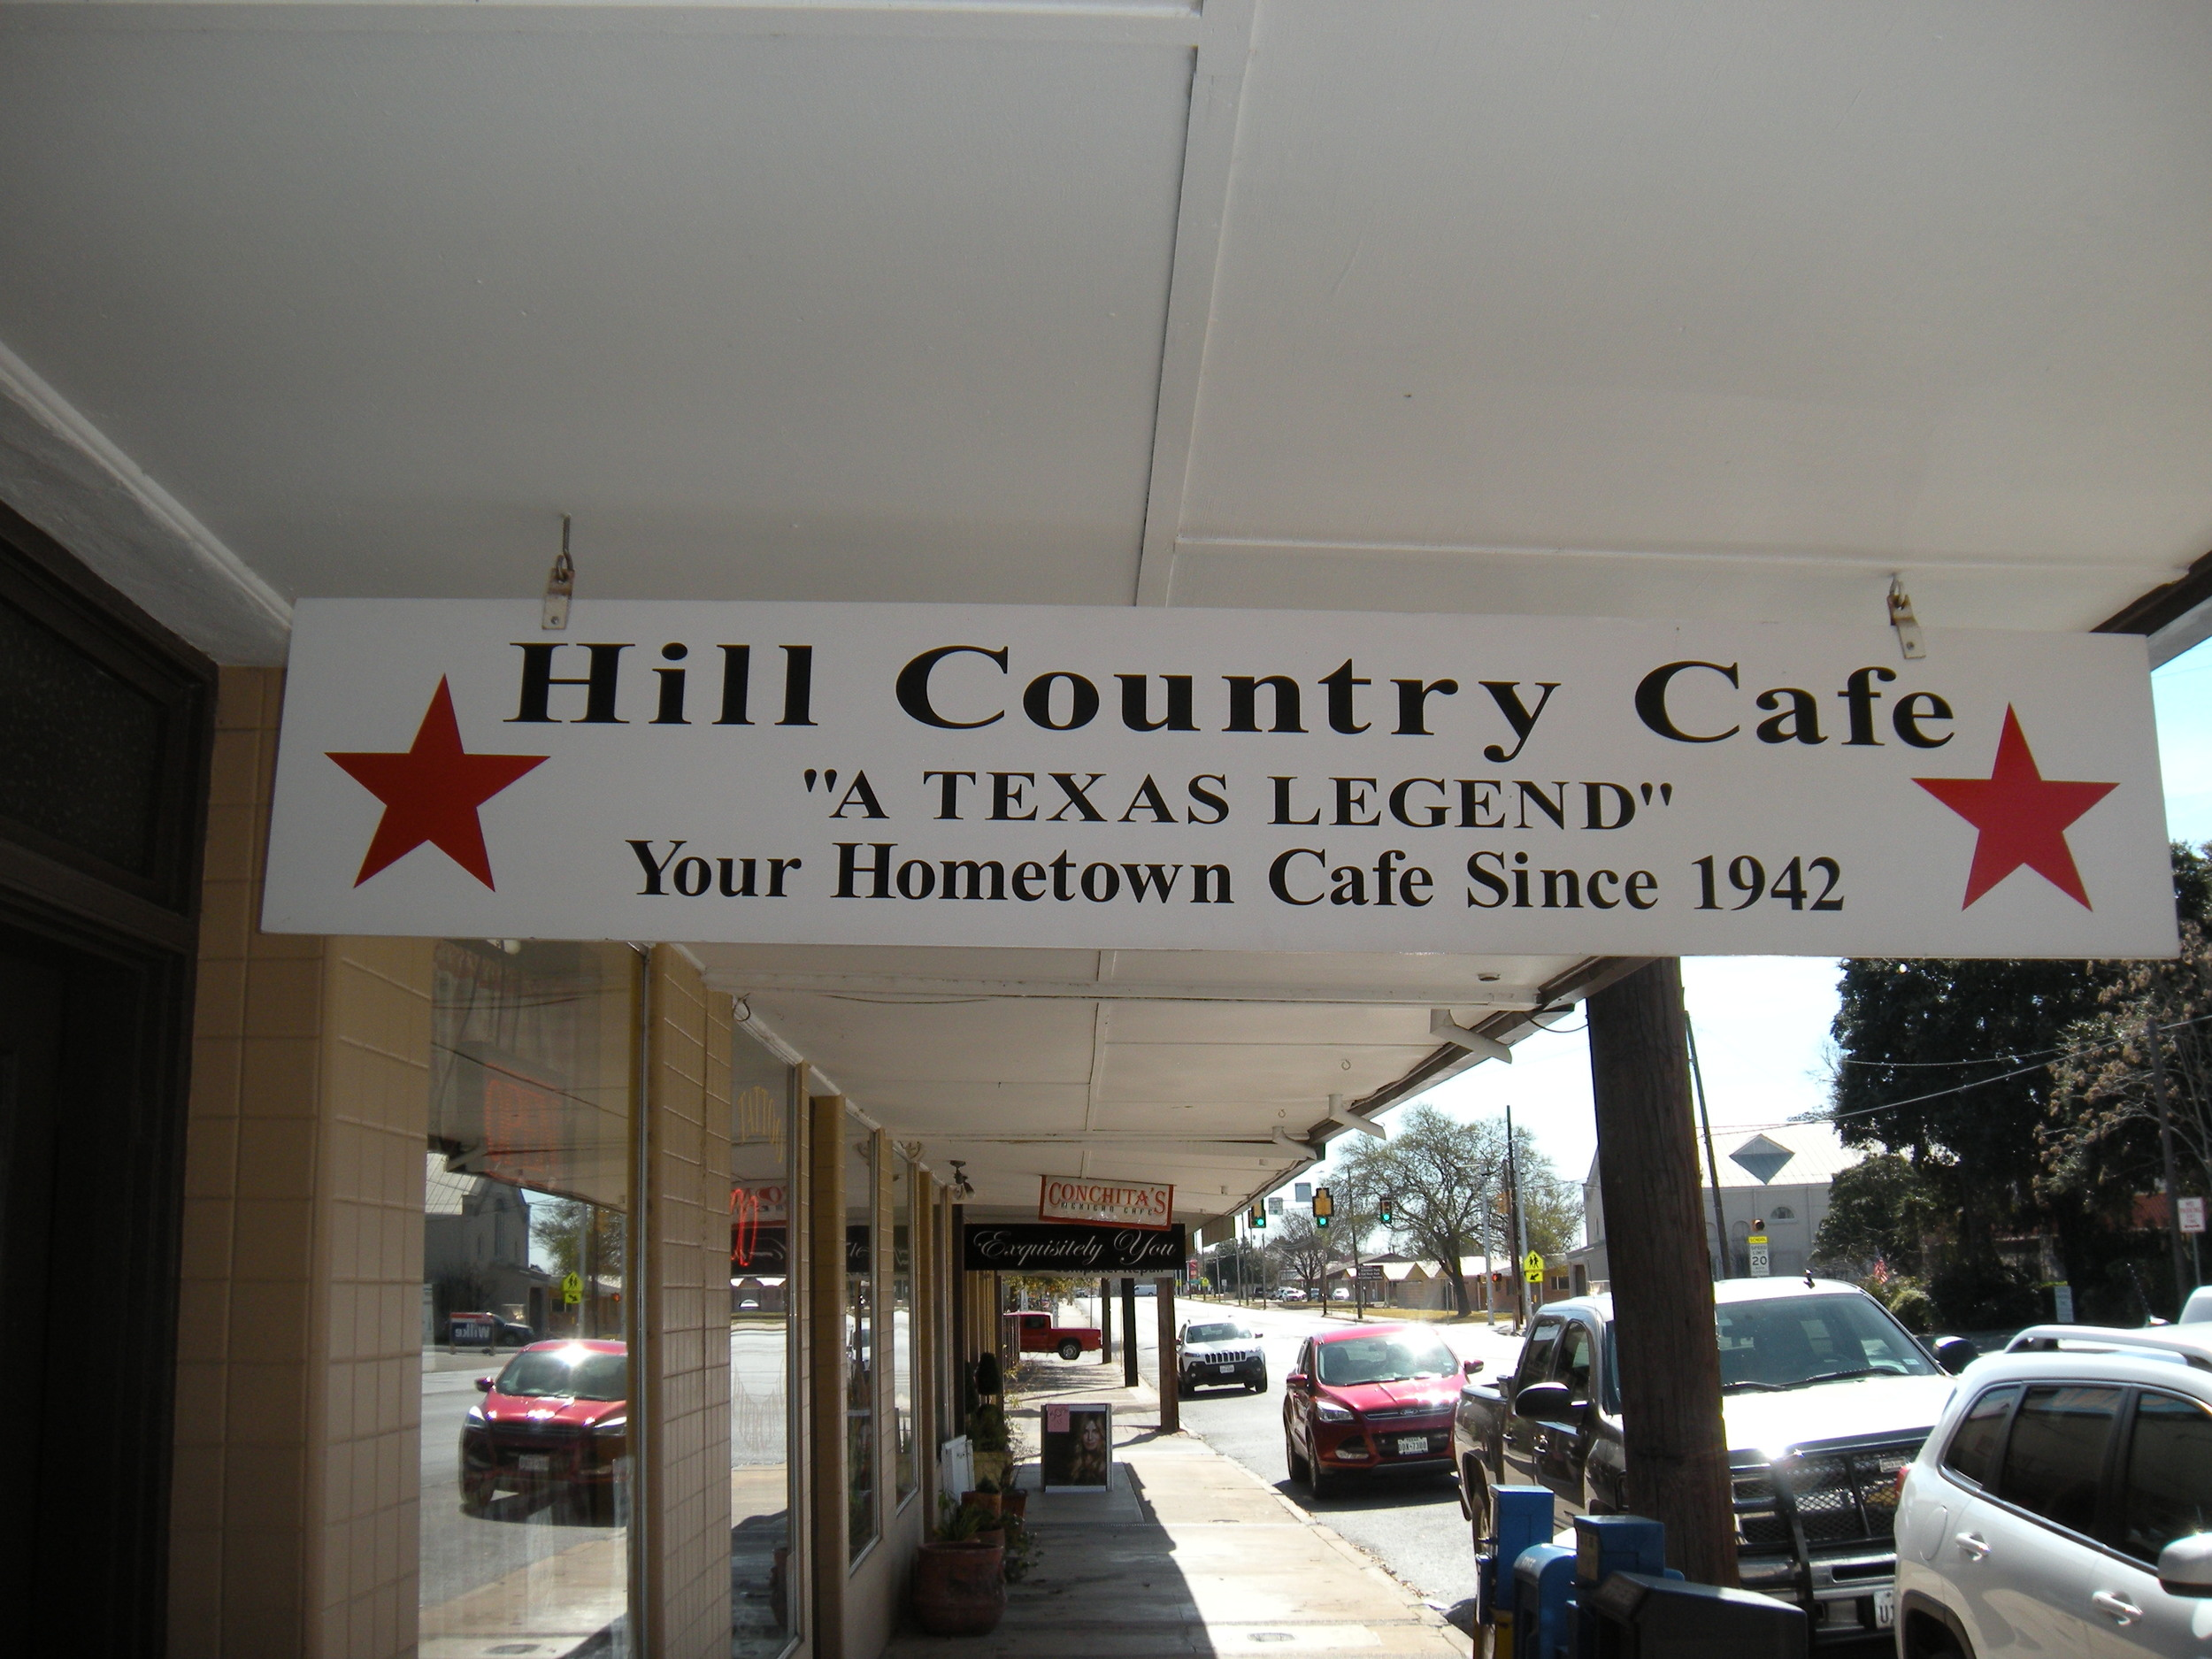 A great place to grab lunch next time you're in Kerrville.